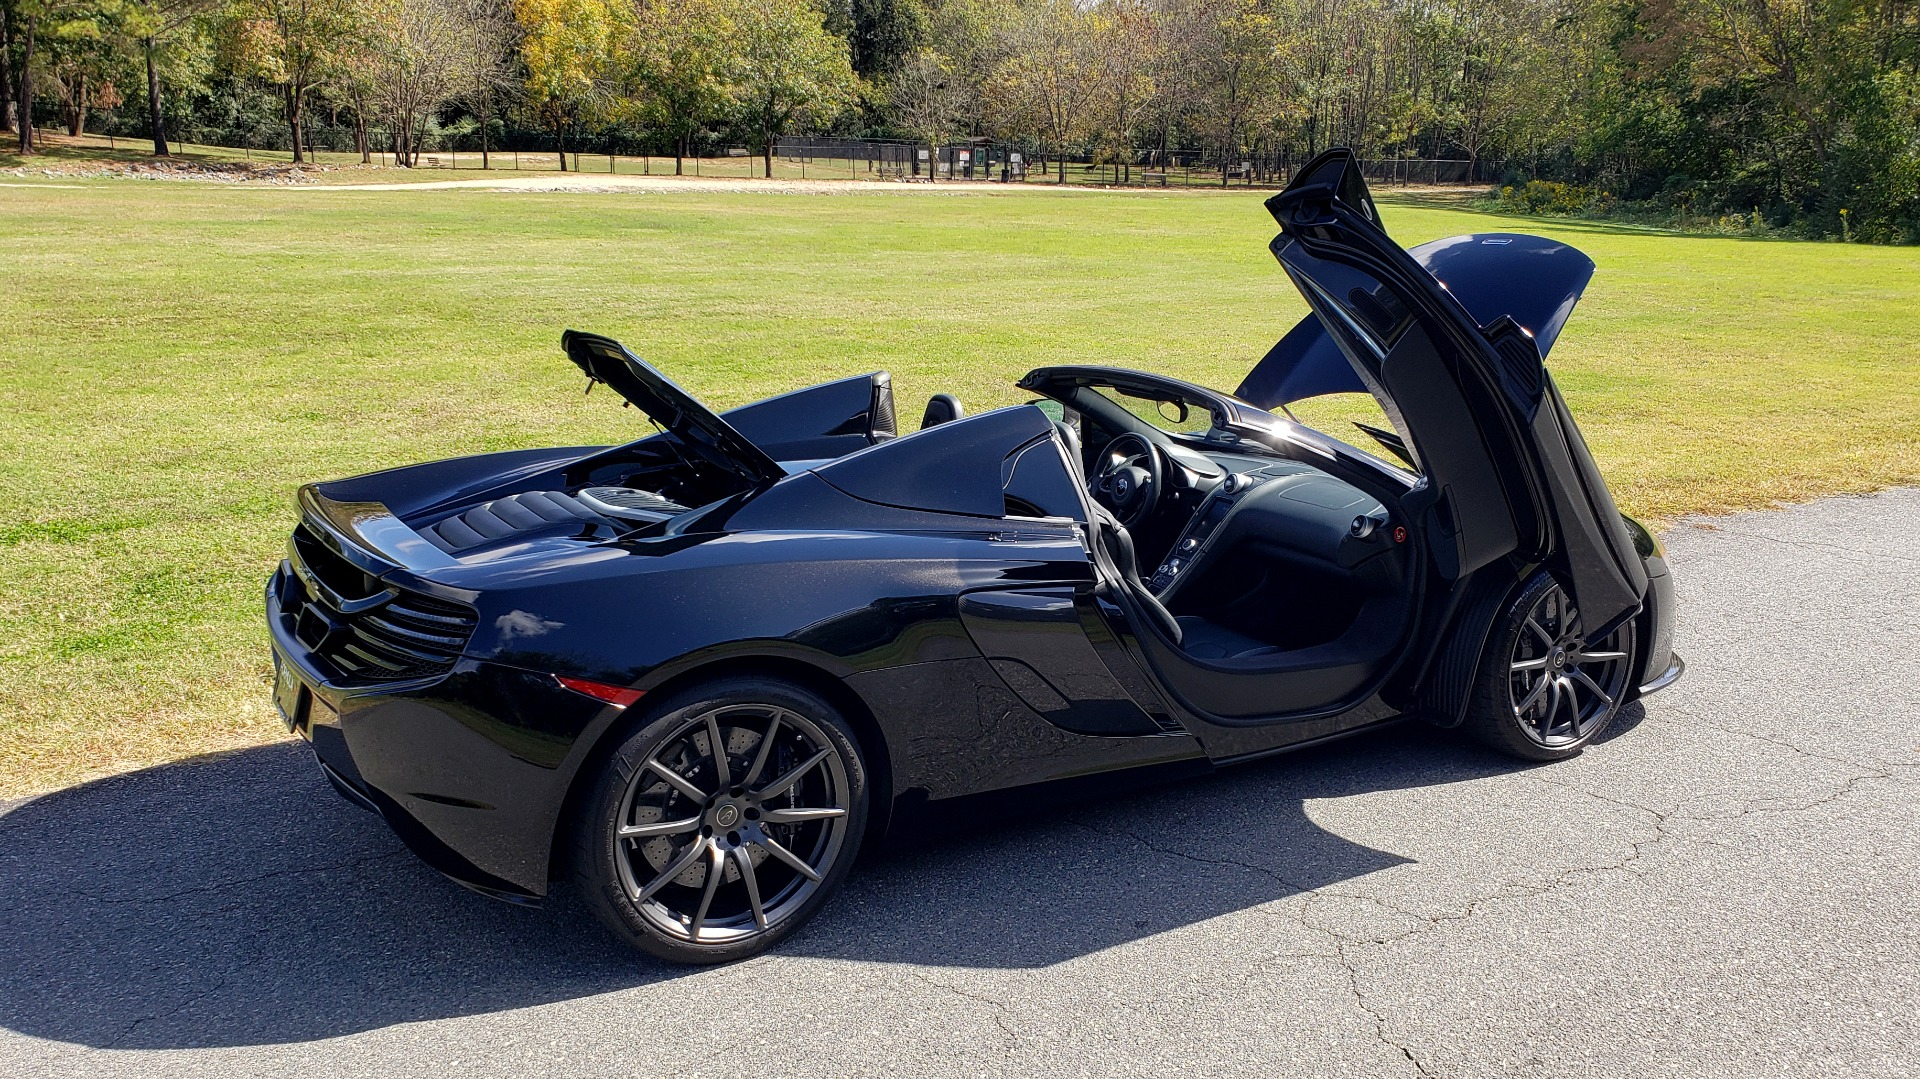 Used 2016 McLaren 650S SPIDER / 641HP / PARK SENSORS / LOW MILES / 1-OWNER for sale Sold at Formula Imports in Charlotte NC 28227 29